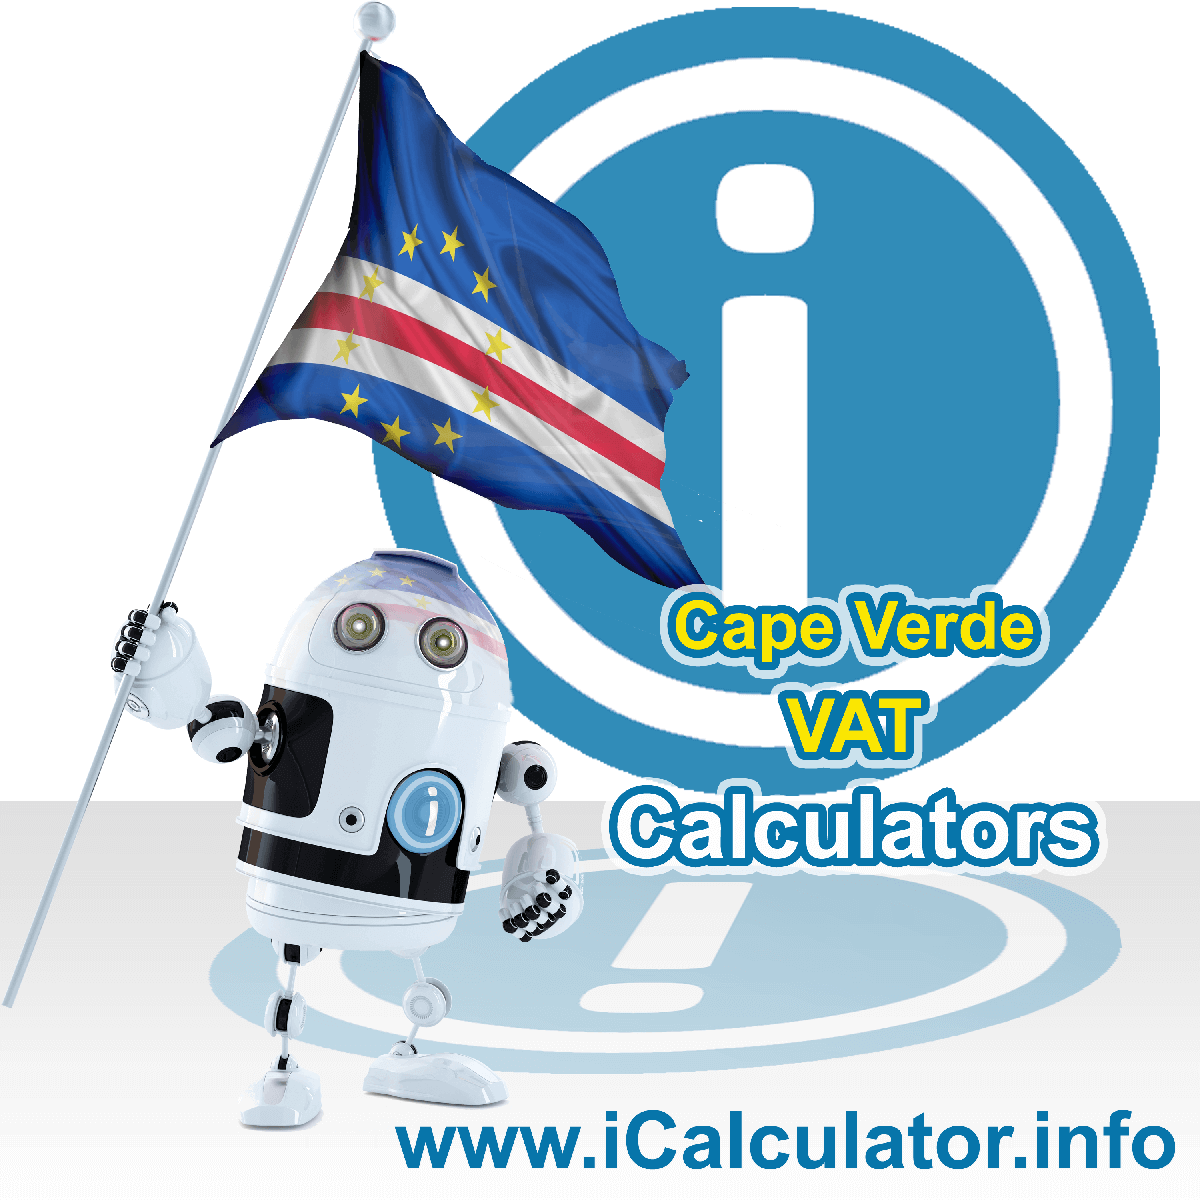 Cape Verde VAT Calculator. This image shows the Cape Verde flag and information relating to the VAT formula used for calculating Value Added Tax in Cape Verde using the Cape Verde VAT Calculator in 2021